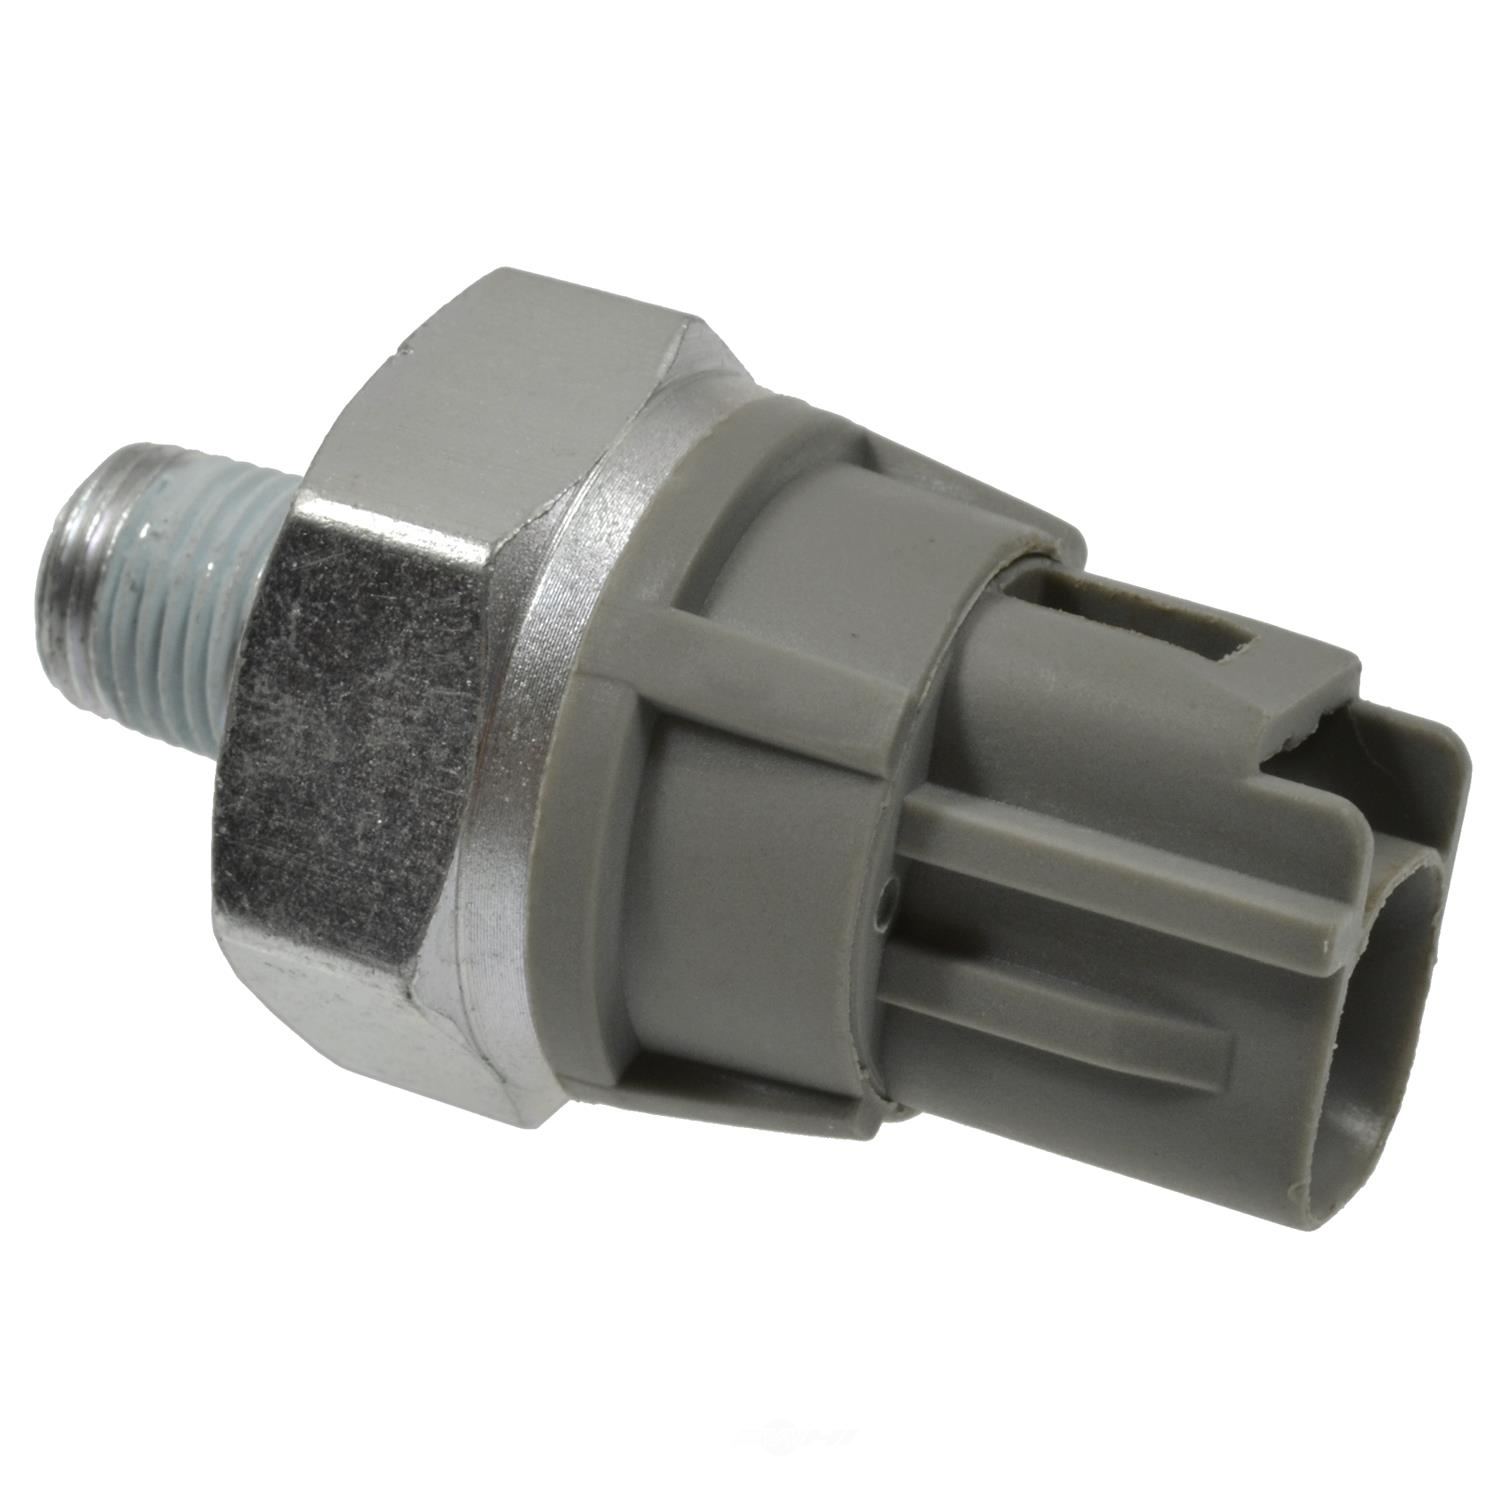 STANDARD T-SERIES - Engine Oil Pressure Sender With Light - STT PS305T